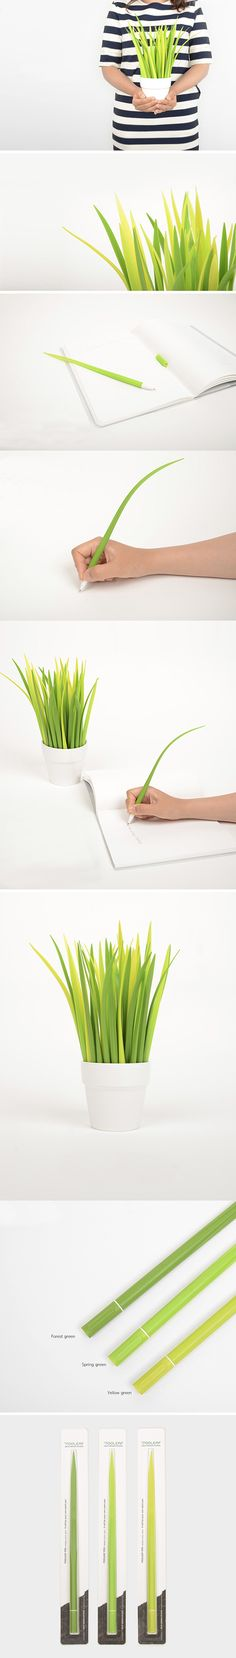 Pooleaf : Pens That Camouflage As Grass